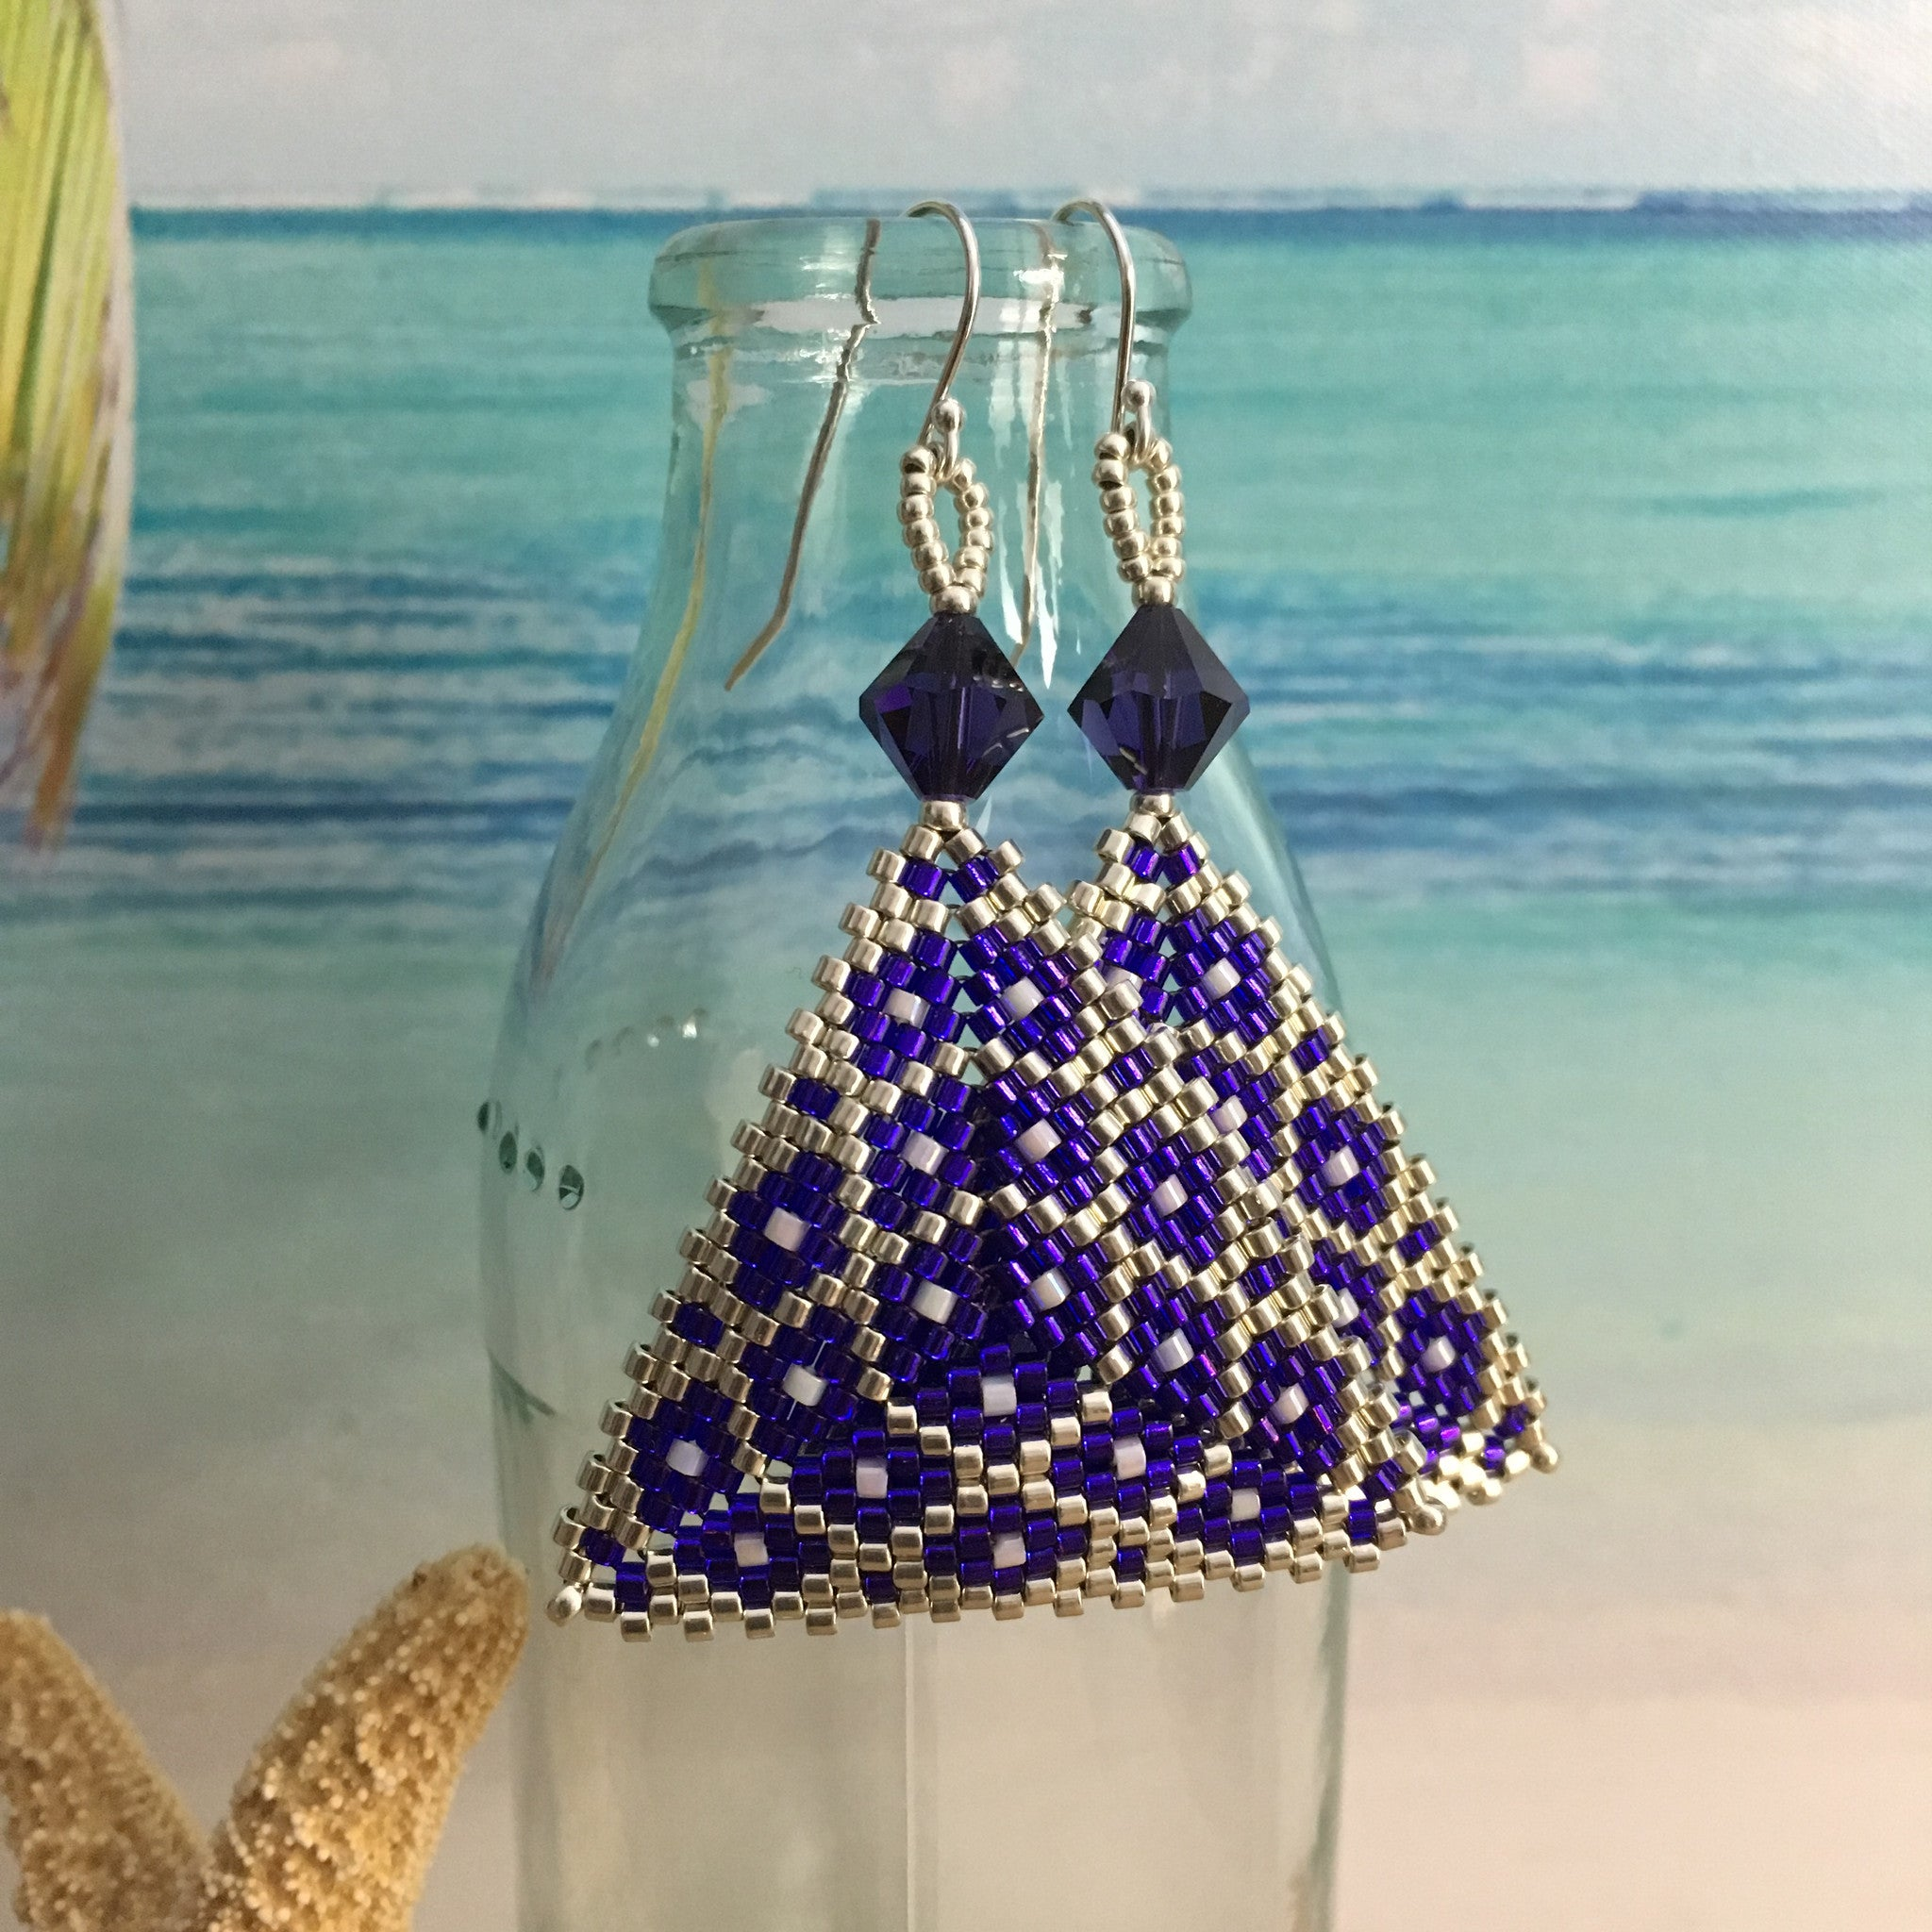 Purple and Silver Geometric Beaded Triangle Earrings elegant modern statement contemporary Swarovski beaded by the beach